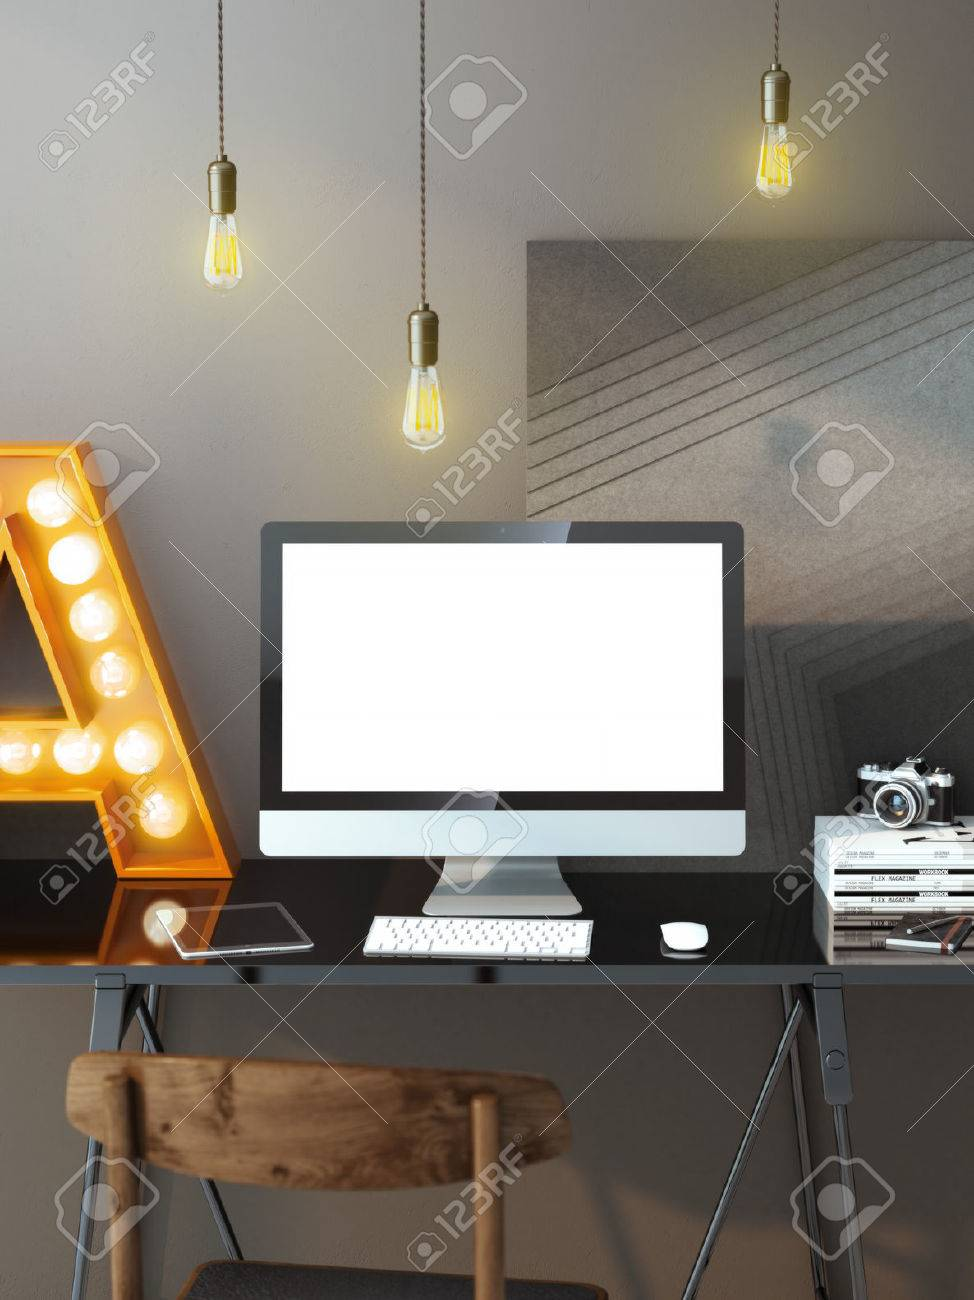 workspace lighting. Modern Workspace With Computer And Light Bulbs Stock Photo - 34560920 Lighting